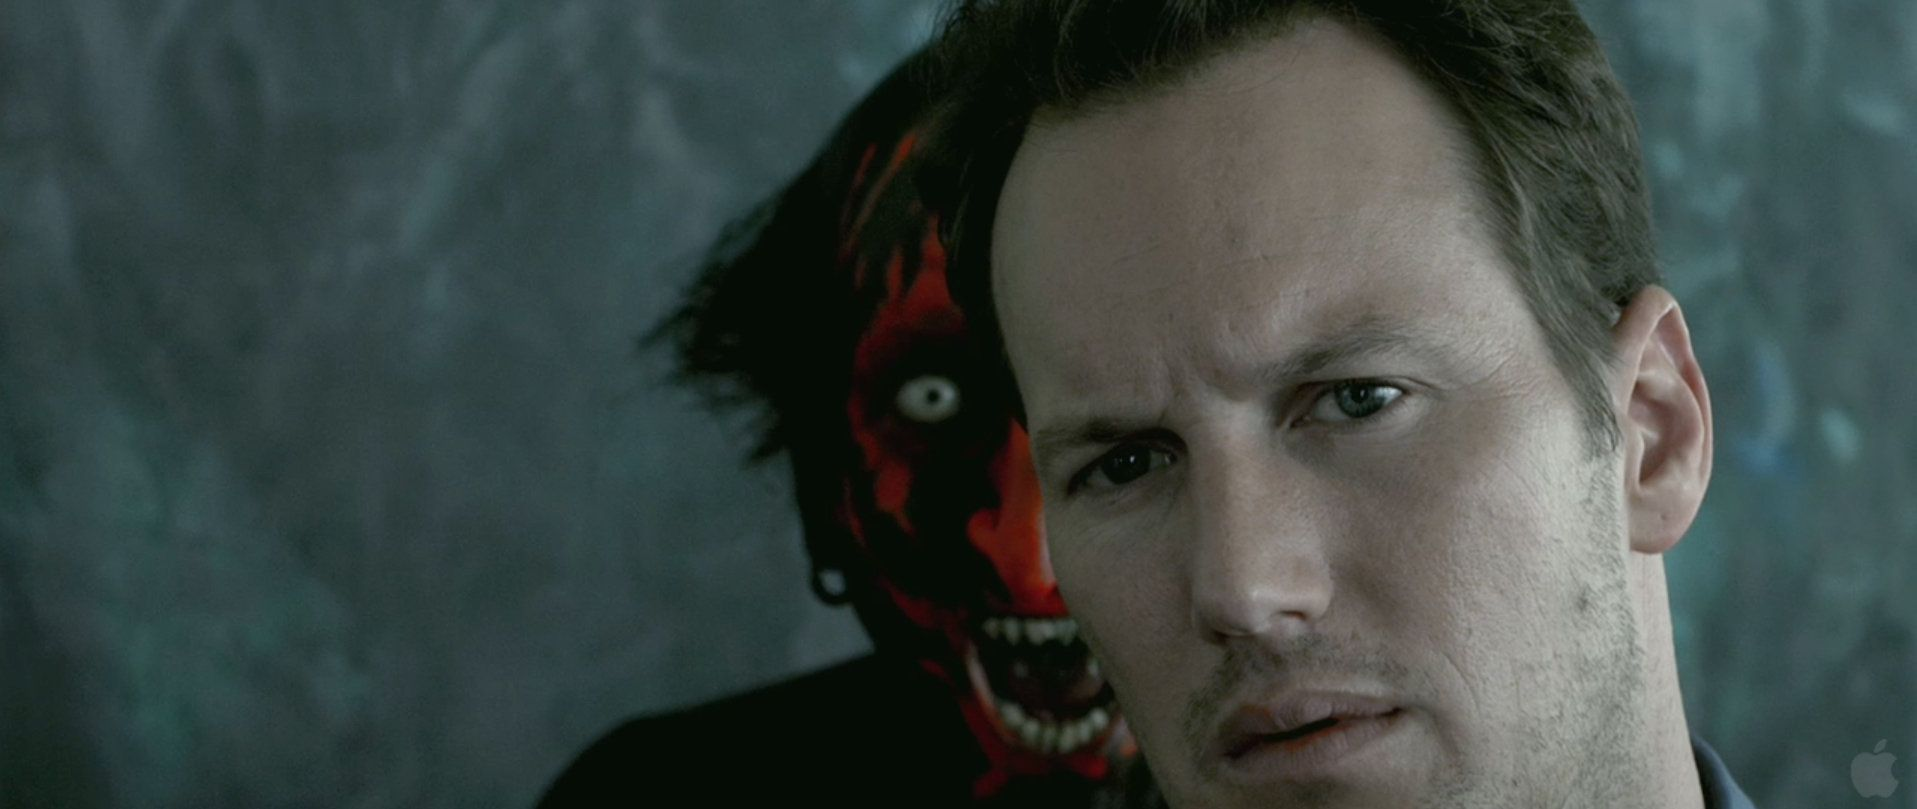 Insidious_best movie EVER.